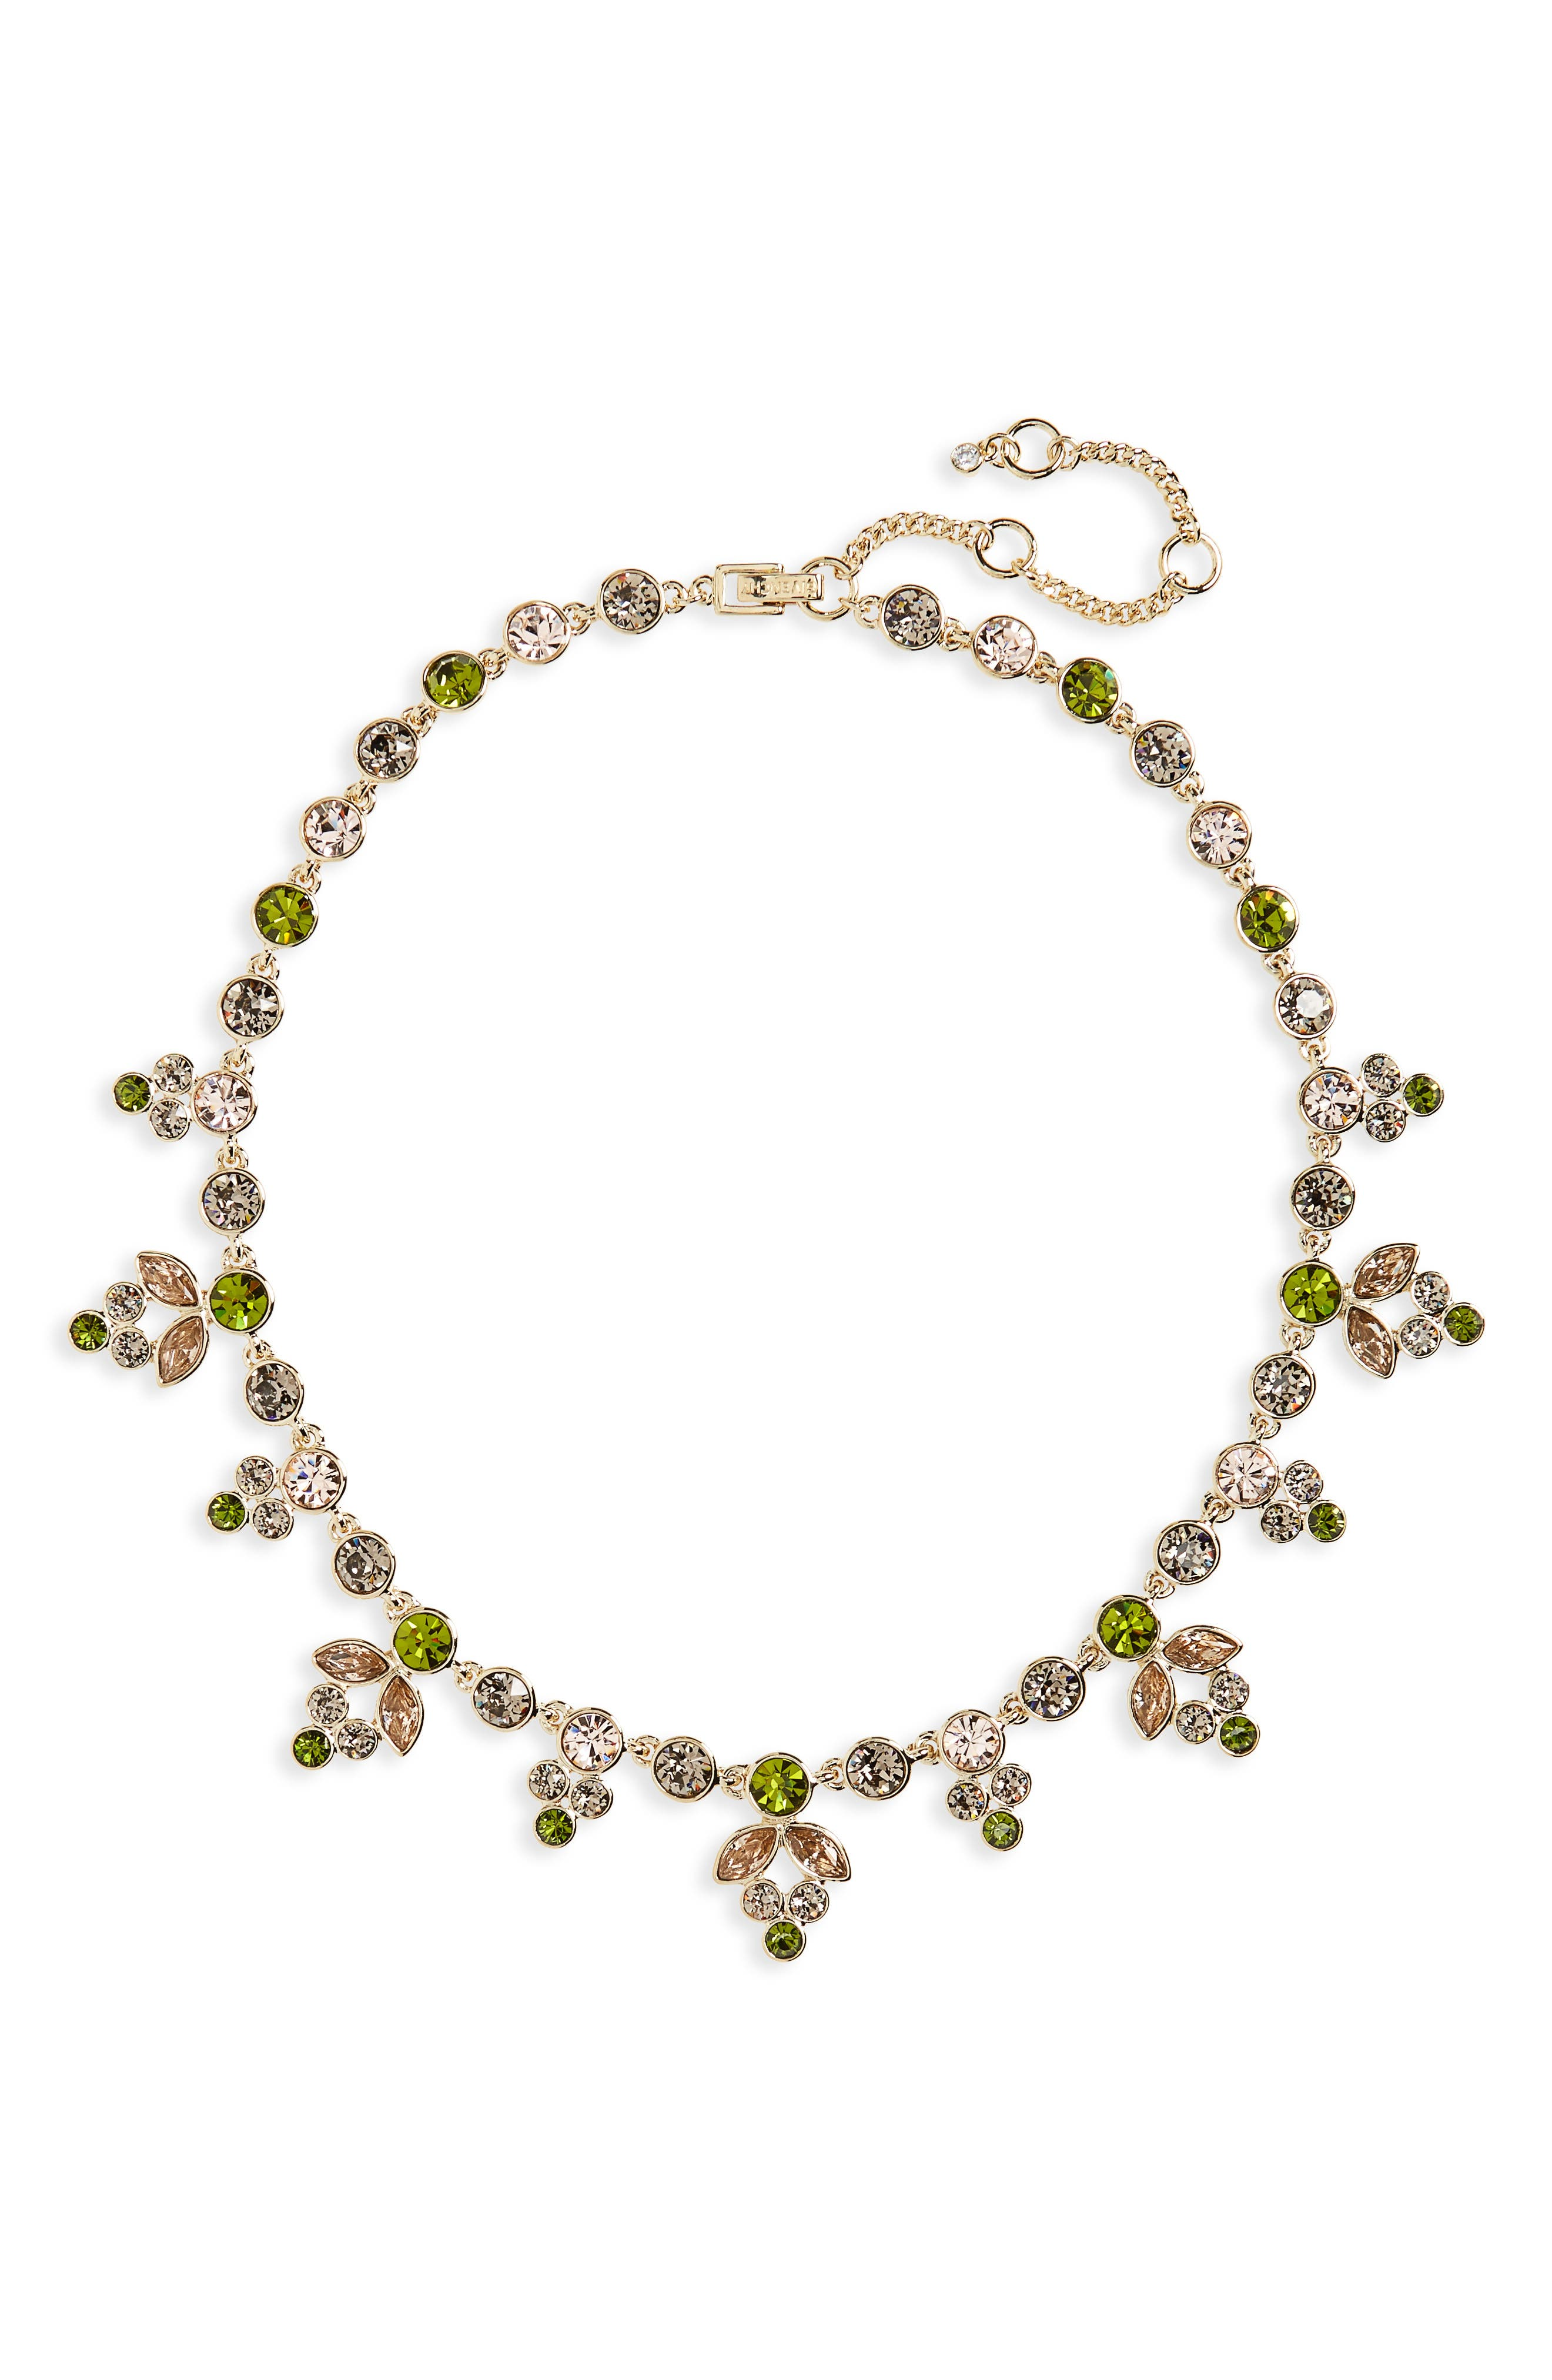 Givenchy Sydney Collar Necklace